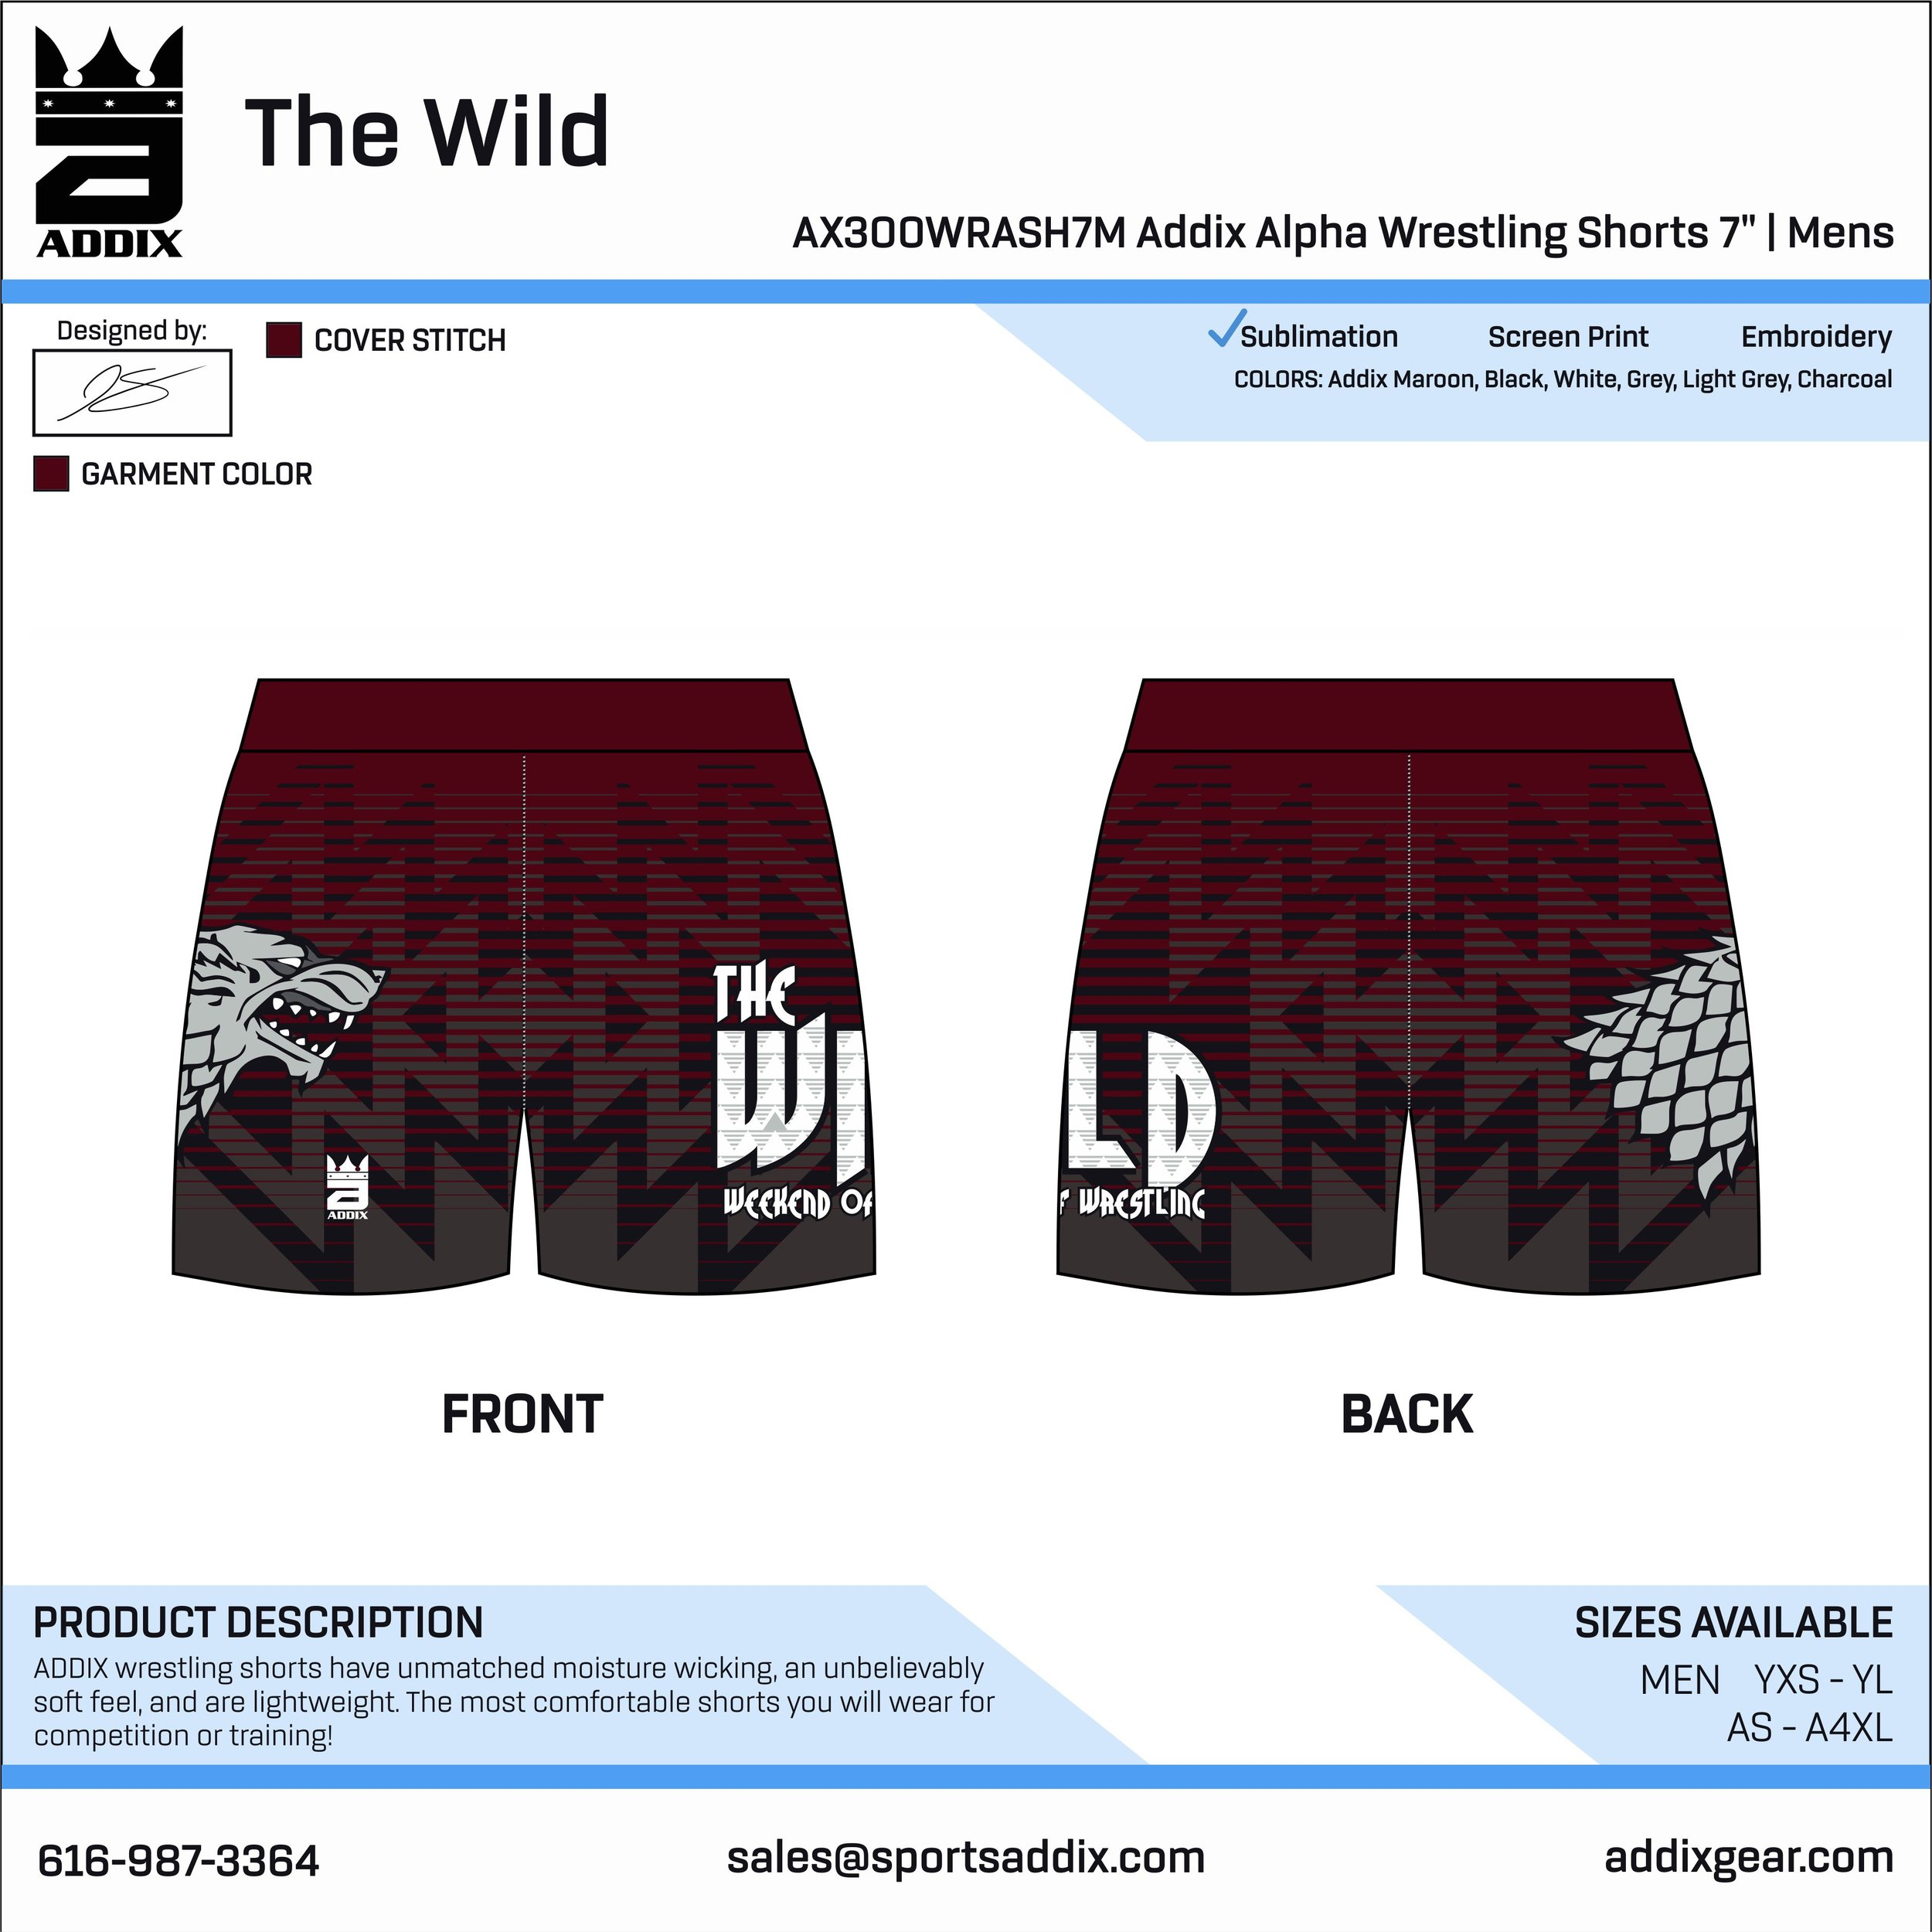 The Wild_2019_3-5_JE_Alpha Wrestling Shorts.jpg